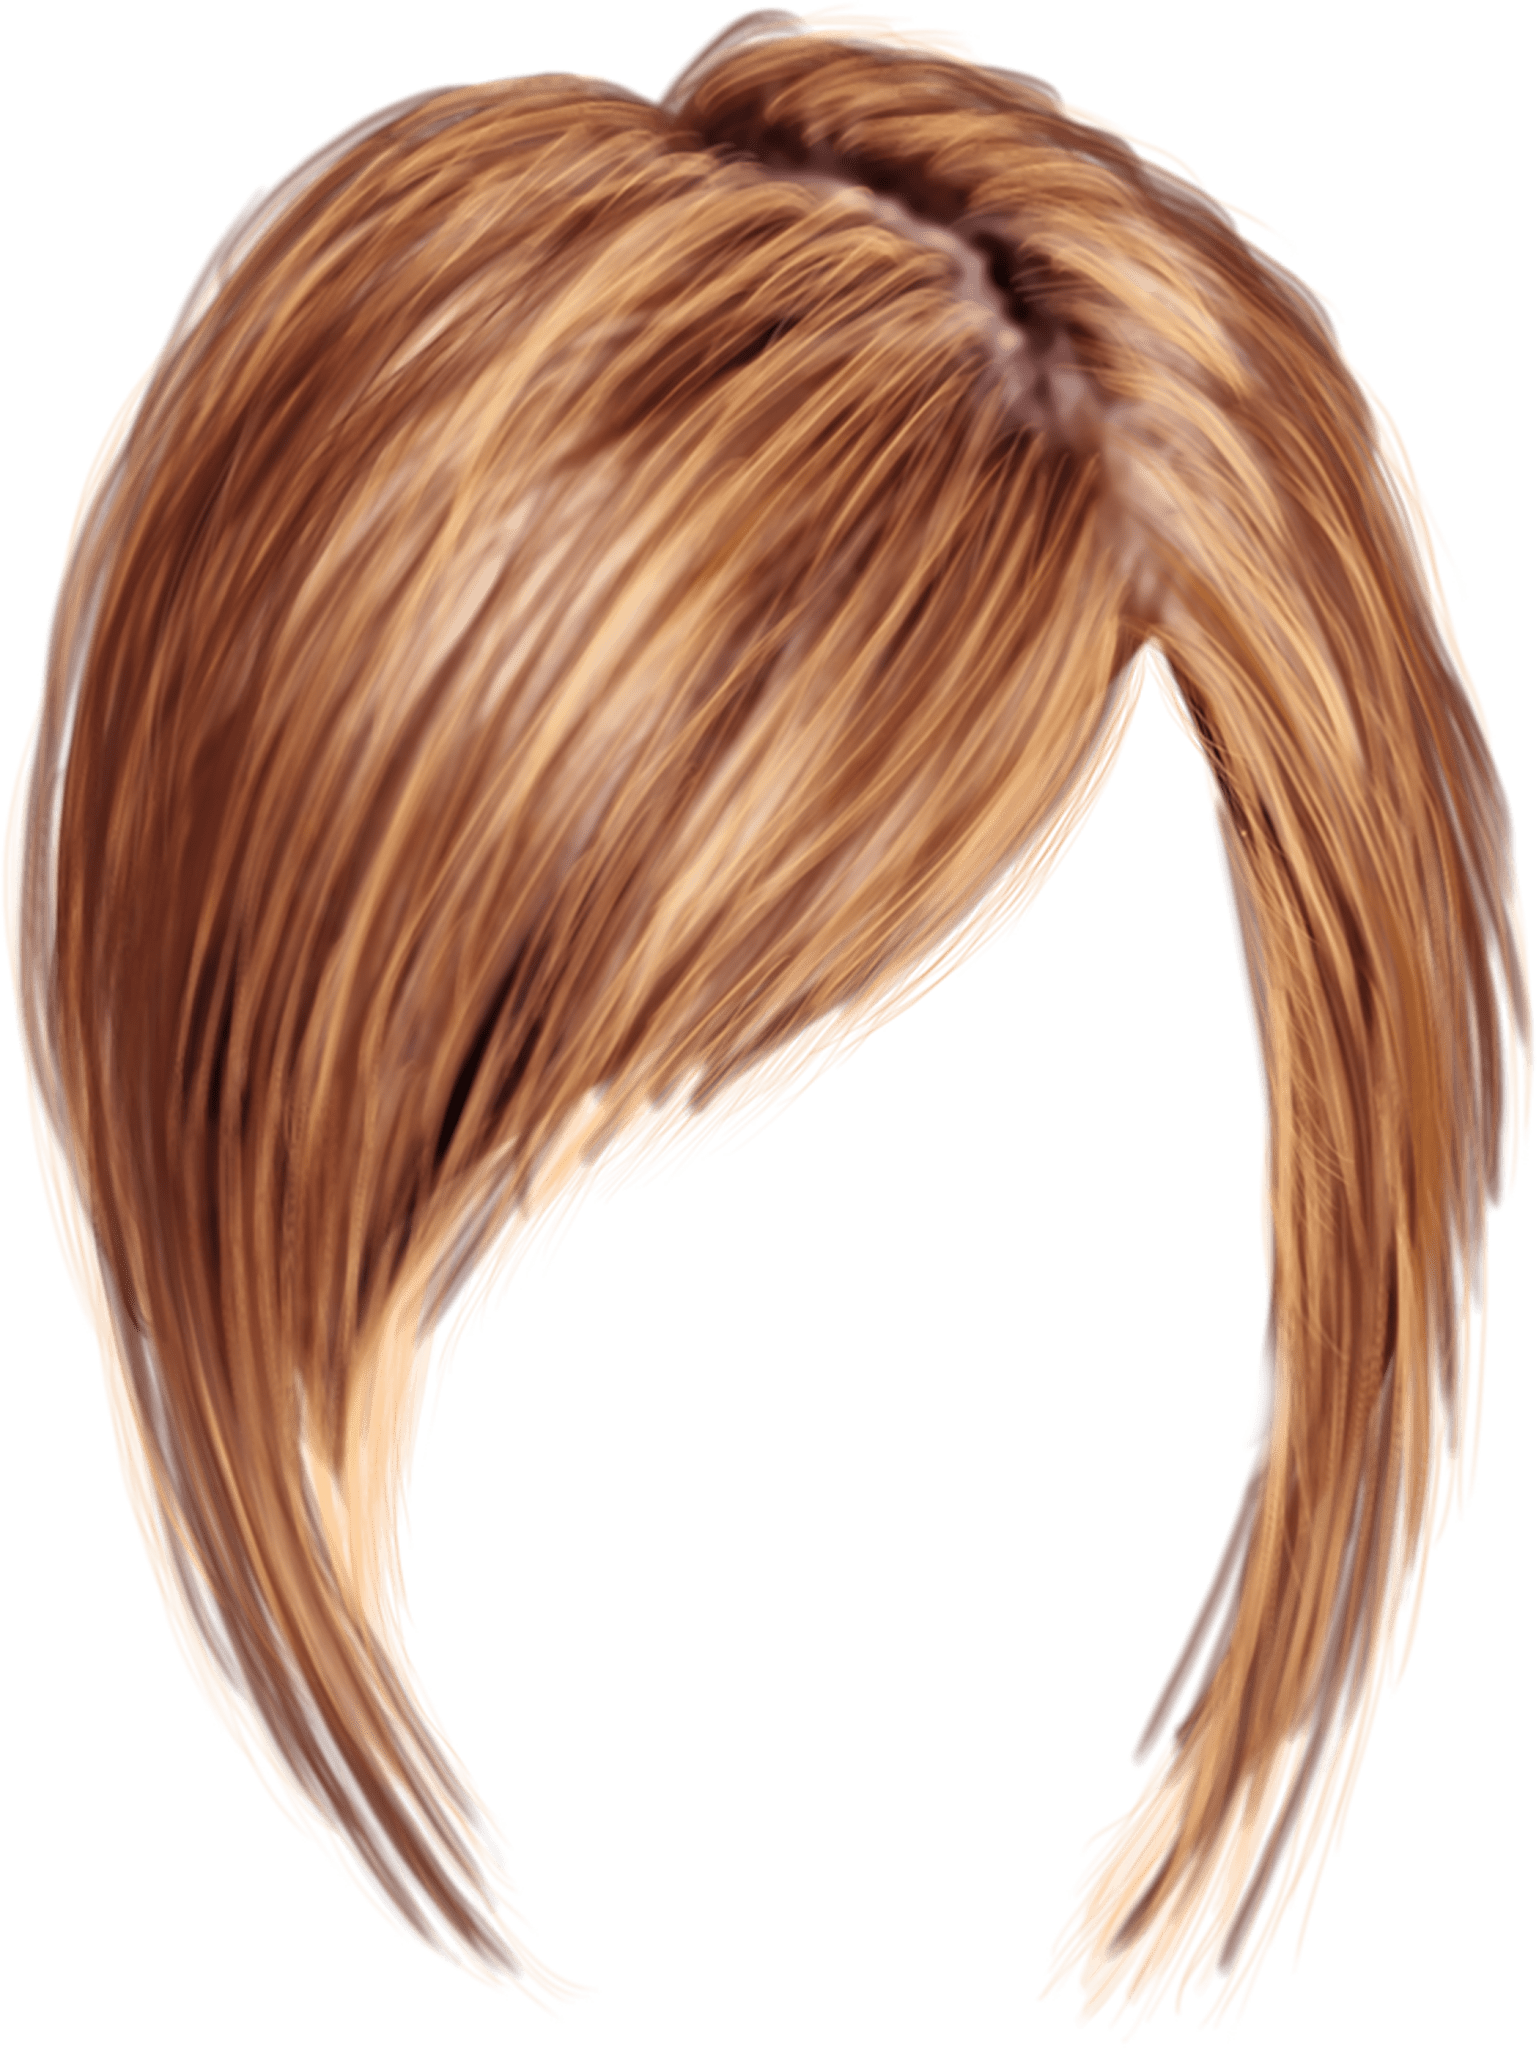 Bowl cut hair png. Transparent background short